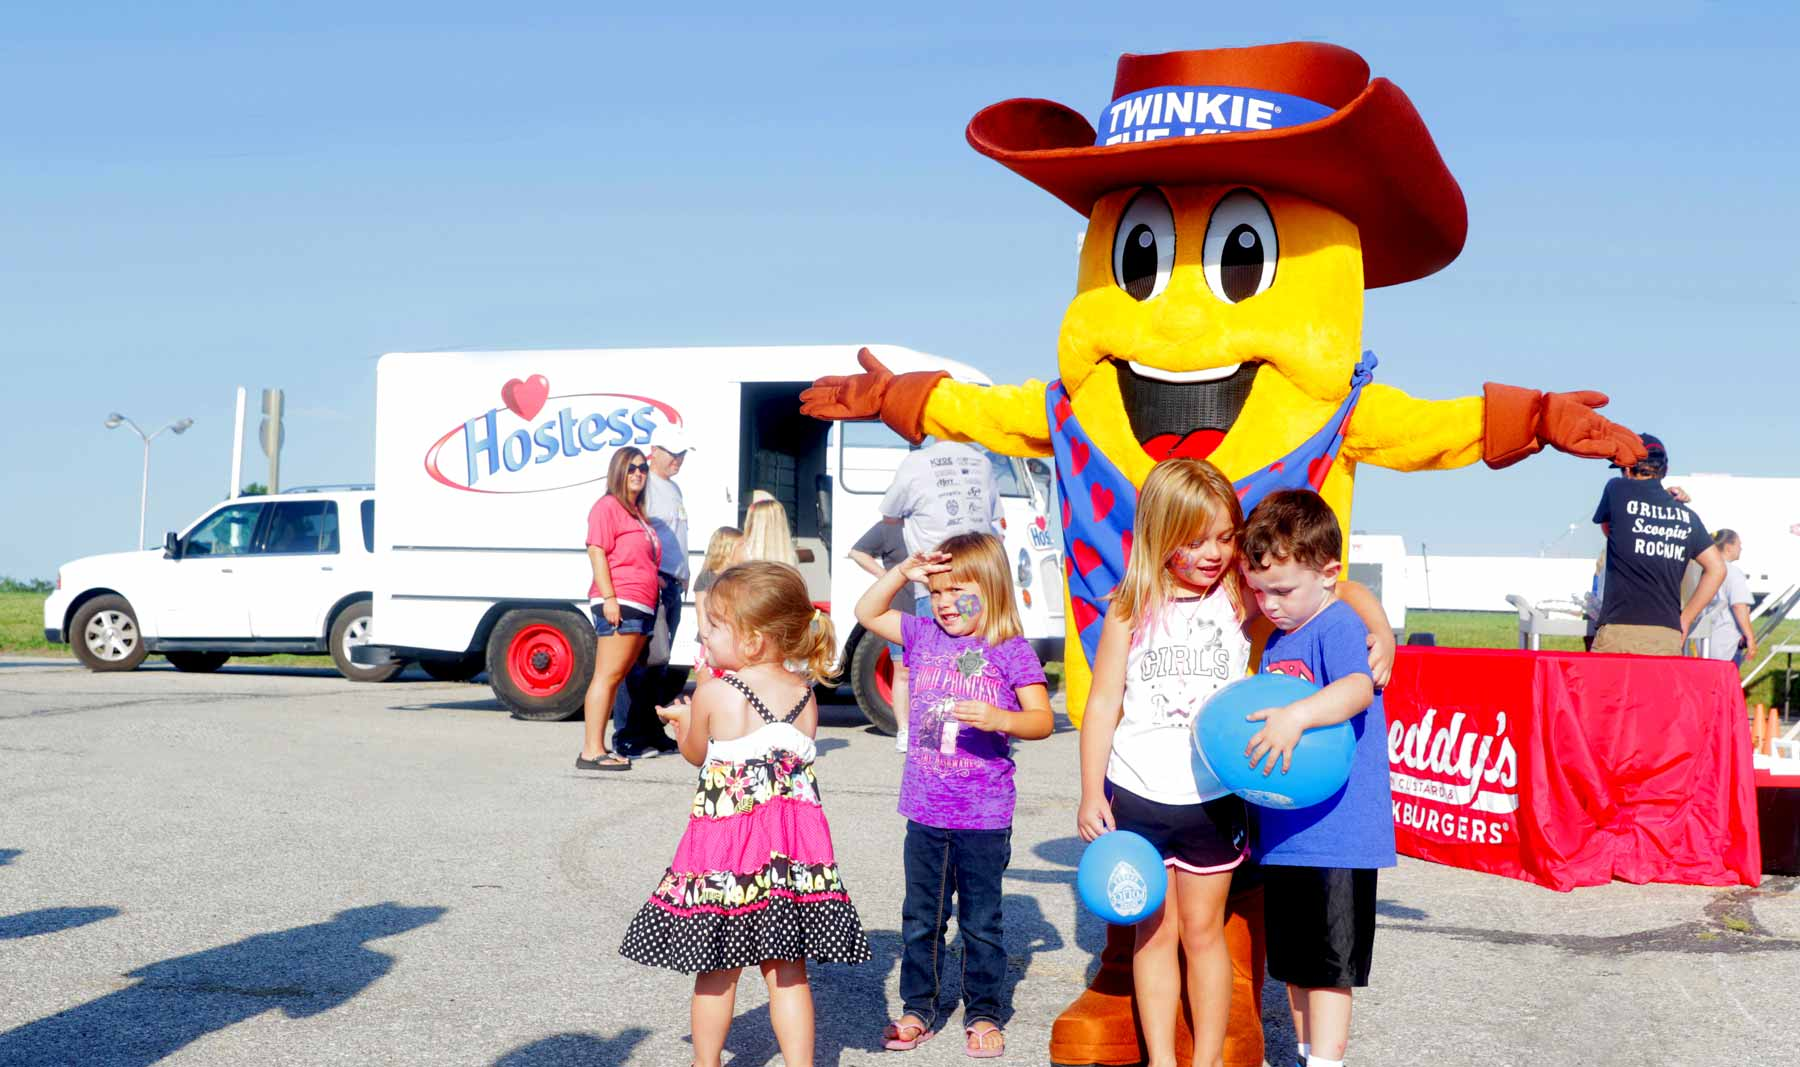 Twinkies Festival October 14 at Lyon County Fairgounds